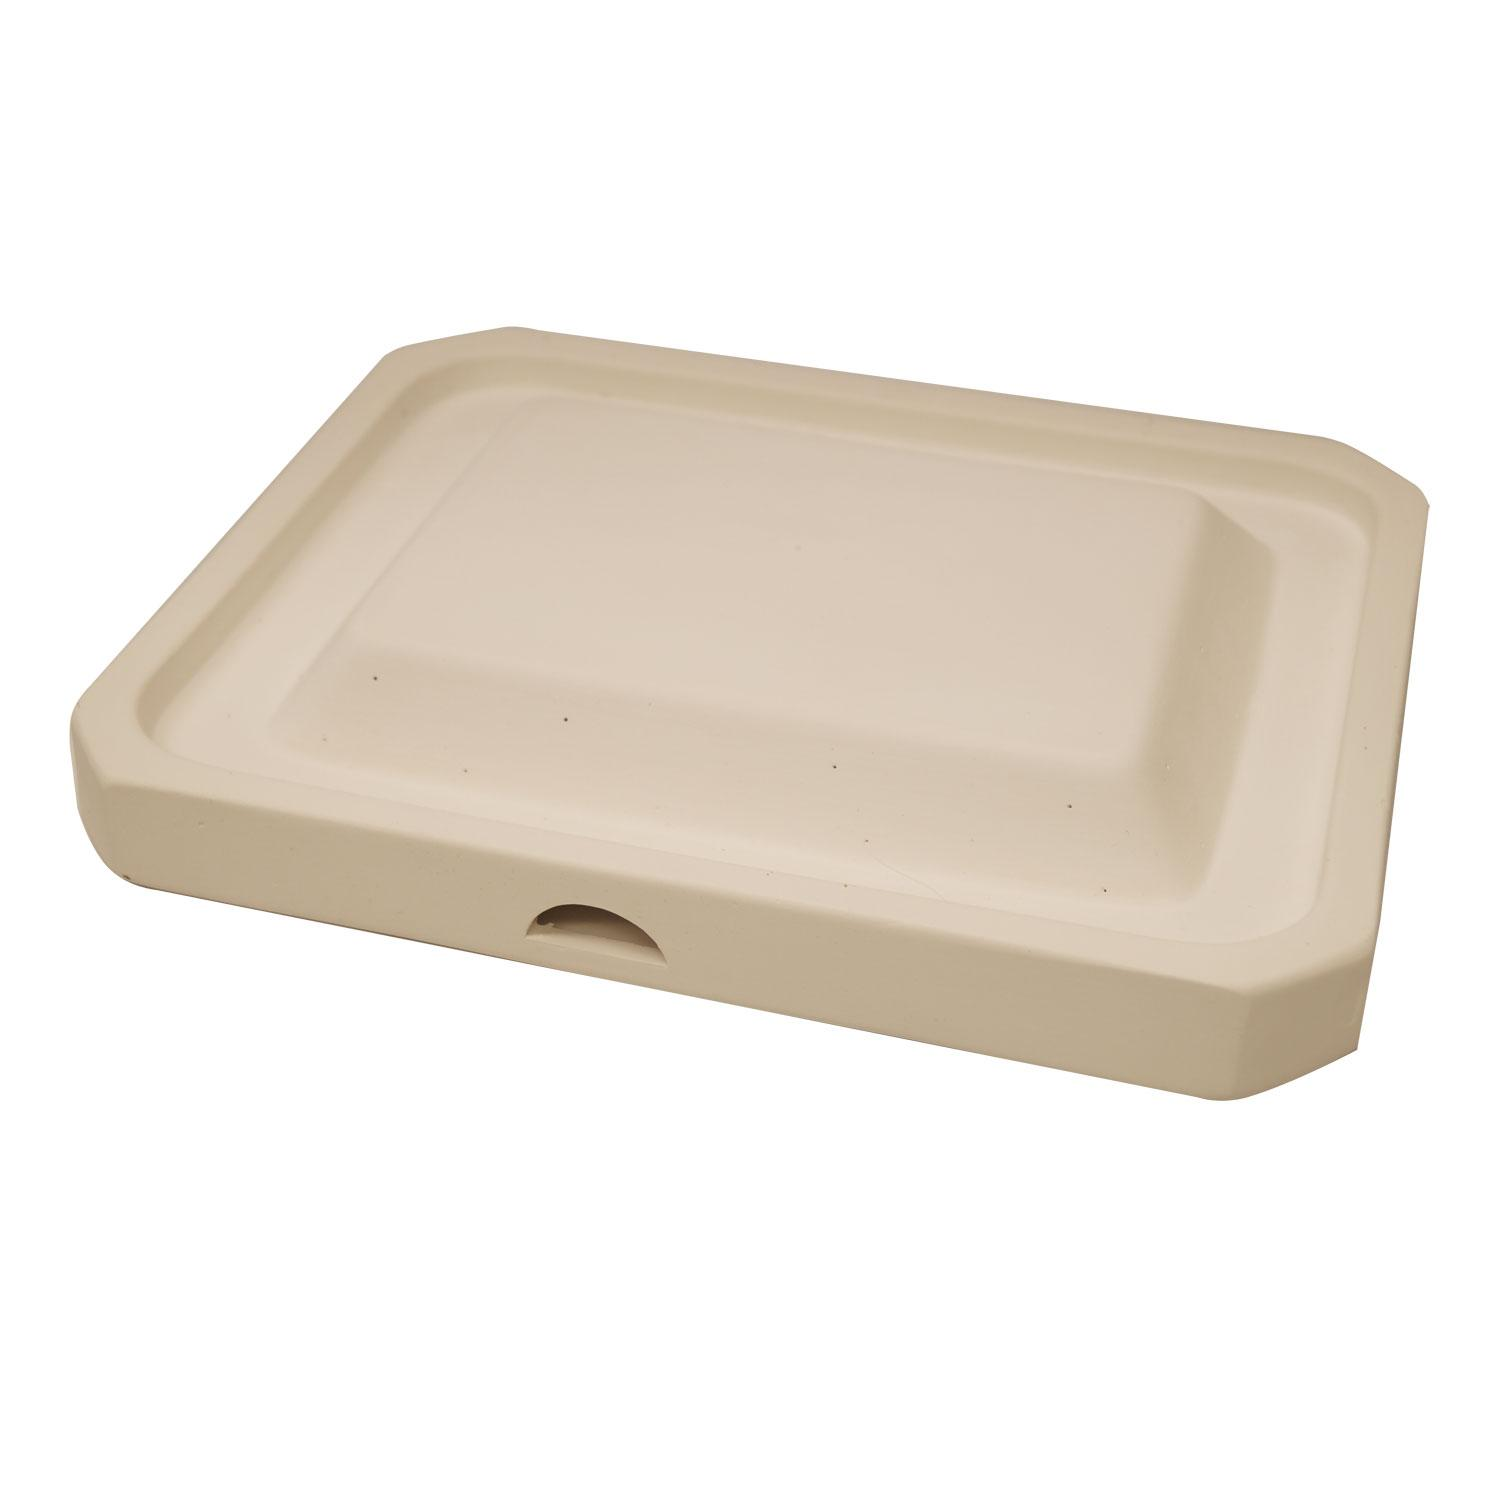 11-3/4 x 9-3/4 Rimmed Rectangle Dish Mold